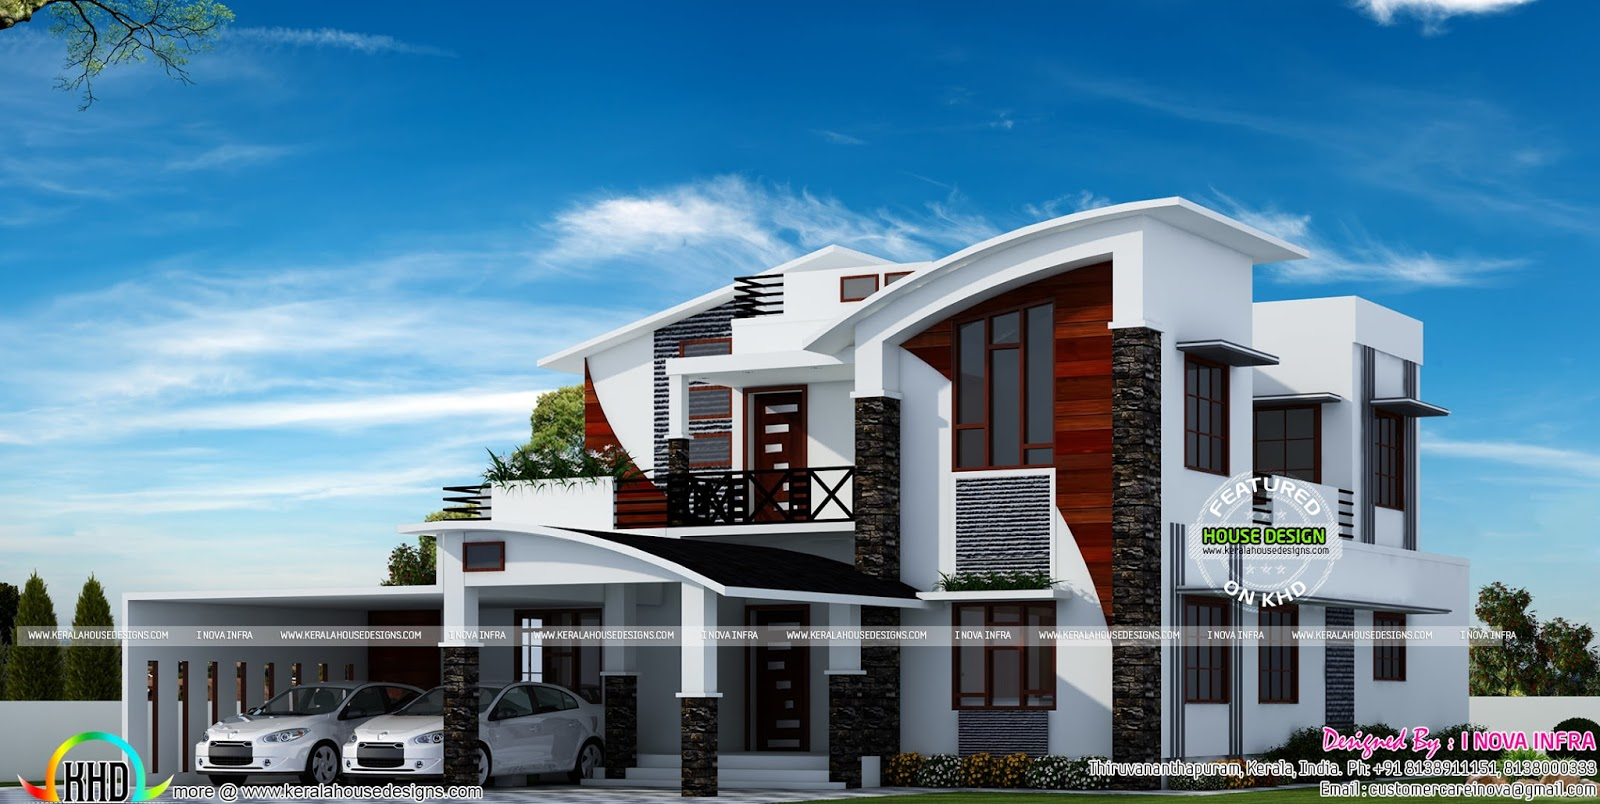 Contemporary model curved roof house kerala home design for Contemporary model house